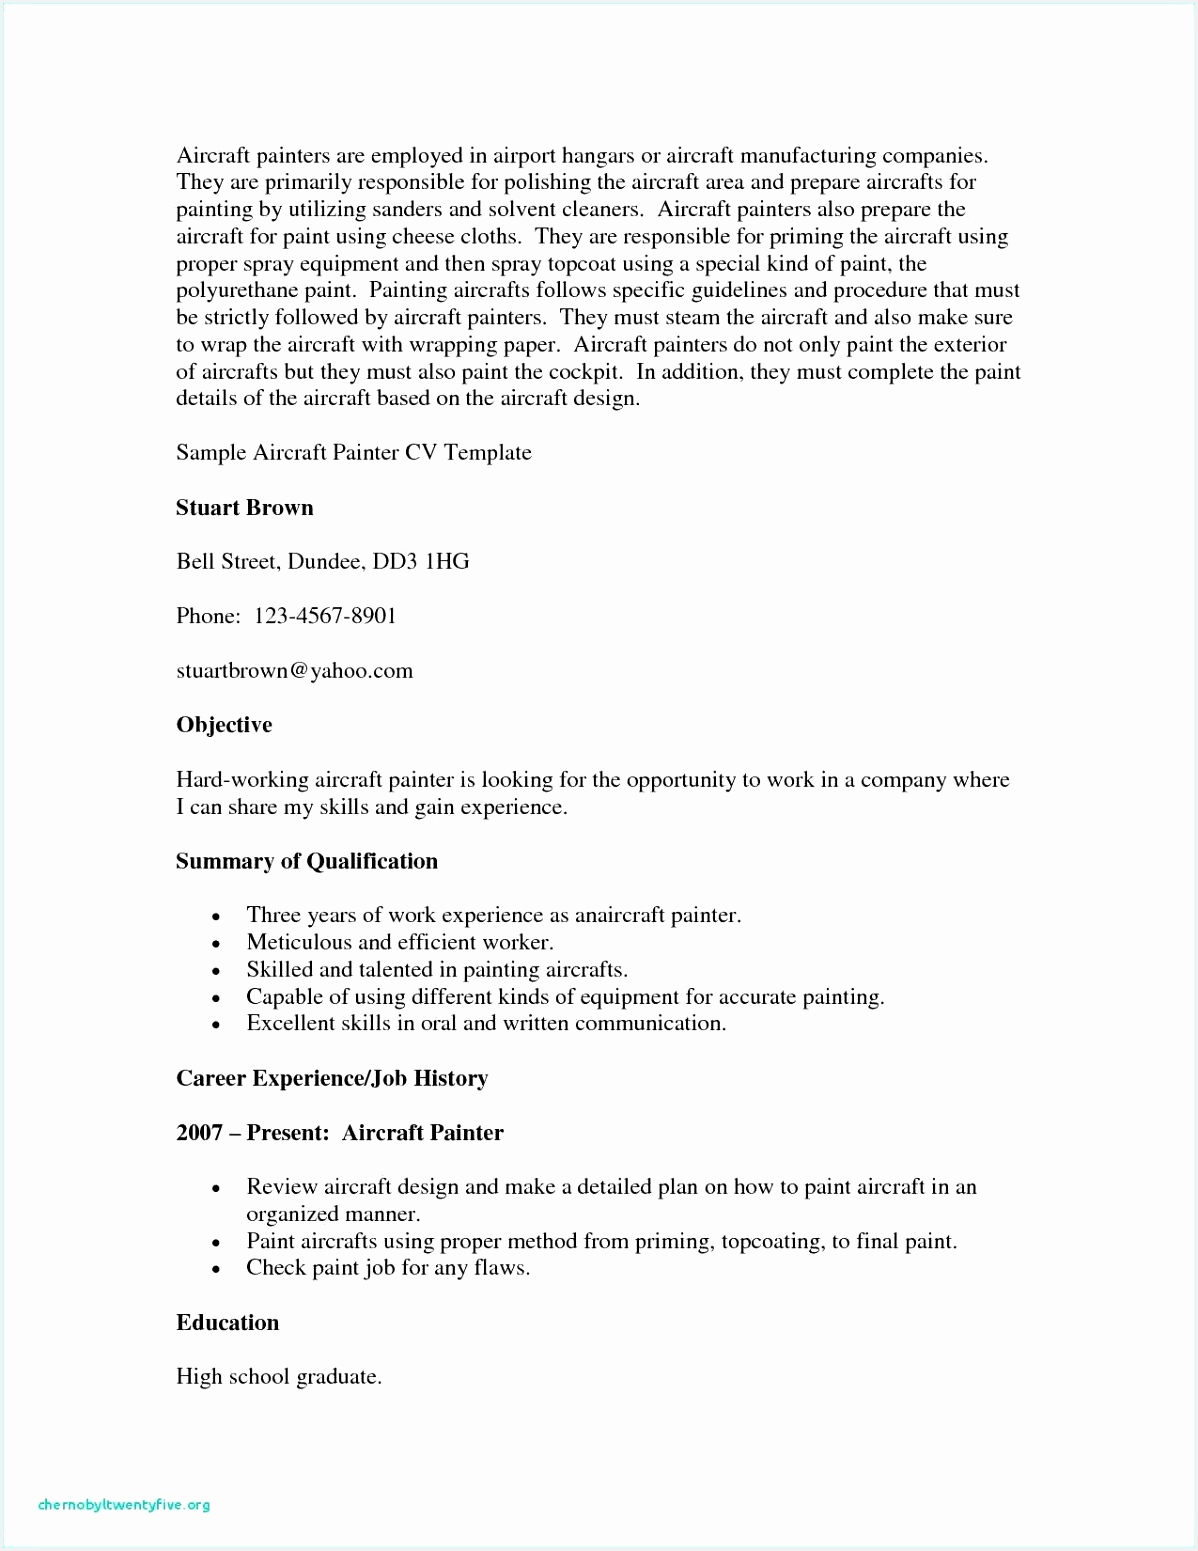 Resume Cover Letter Child Care Valid Resume Examples 0d Good Looking Samples Child Care Template 155111985thTi